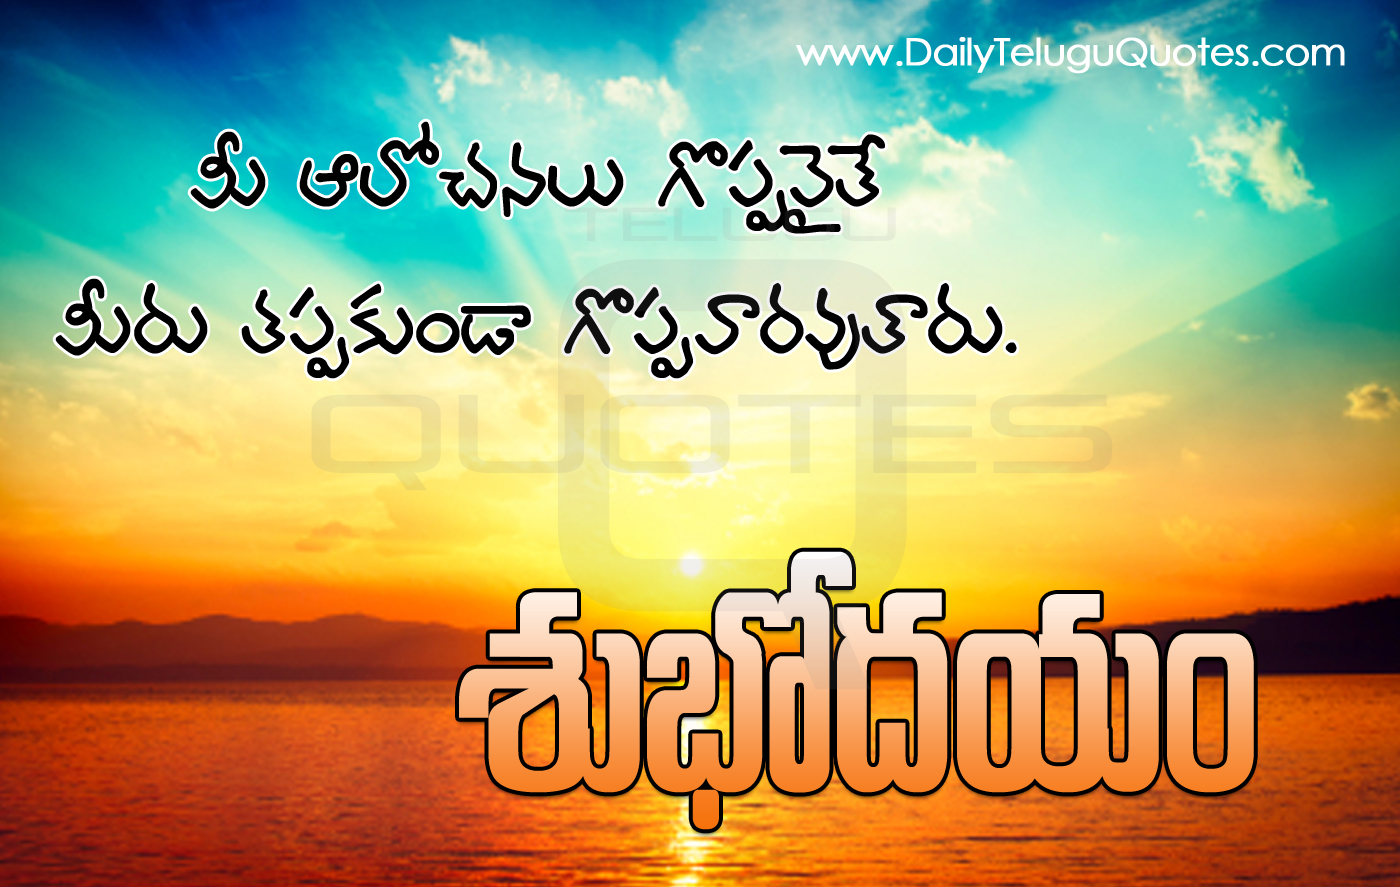 Good Morning Quotes Goodreads : Good morning quotes and wallpapers with nice telugu